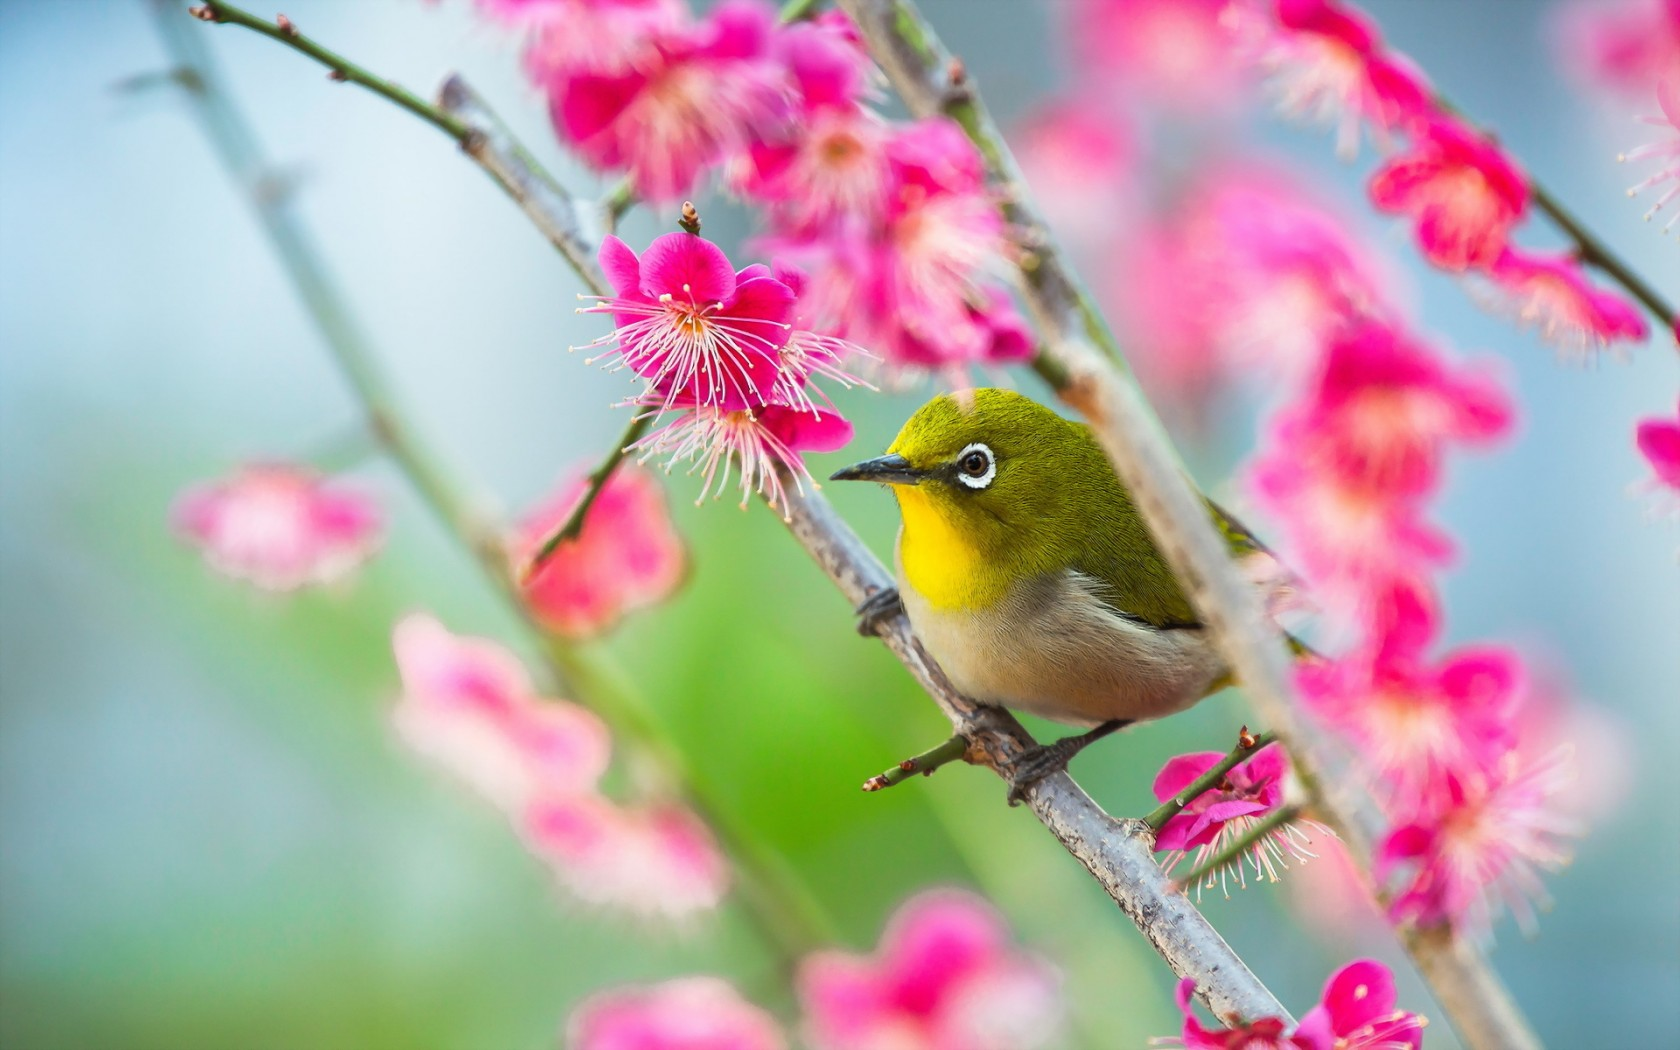 Bird Nature Close-Up Flowers HD Wallpaper